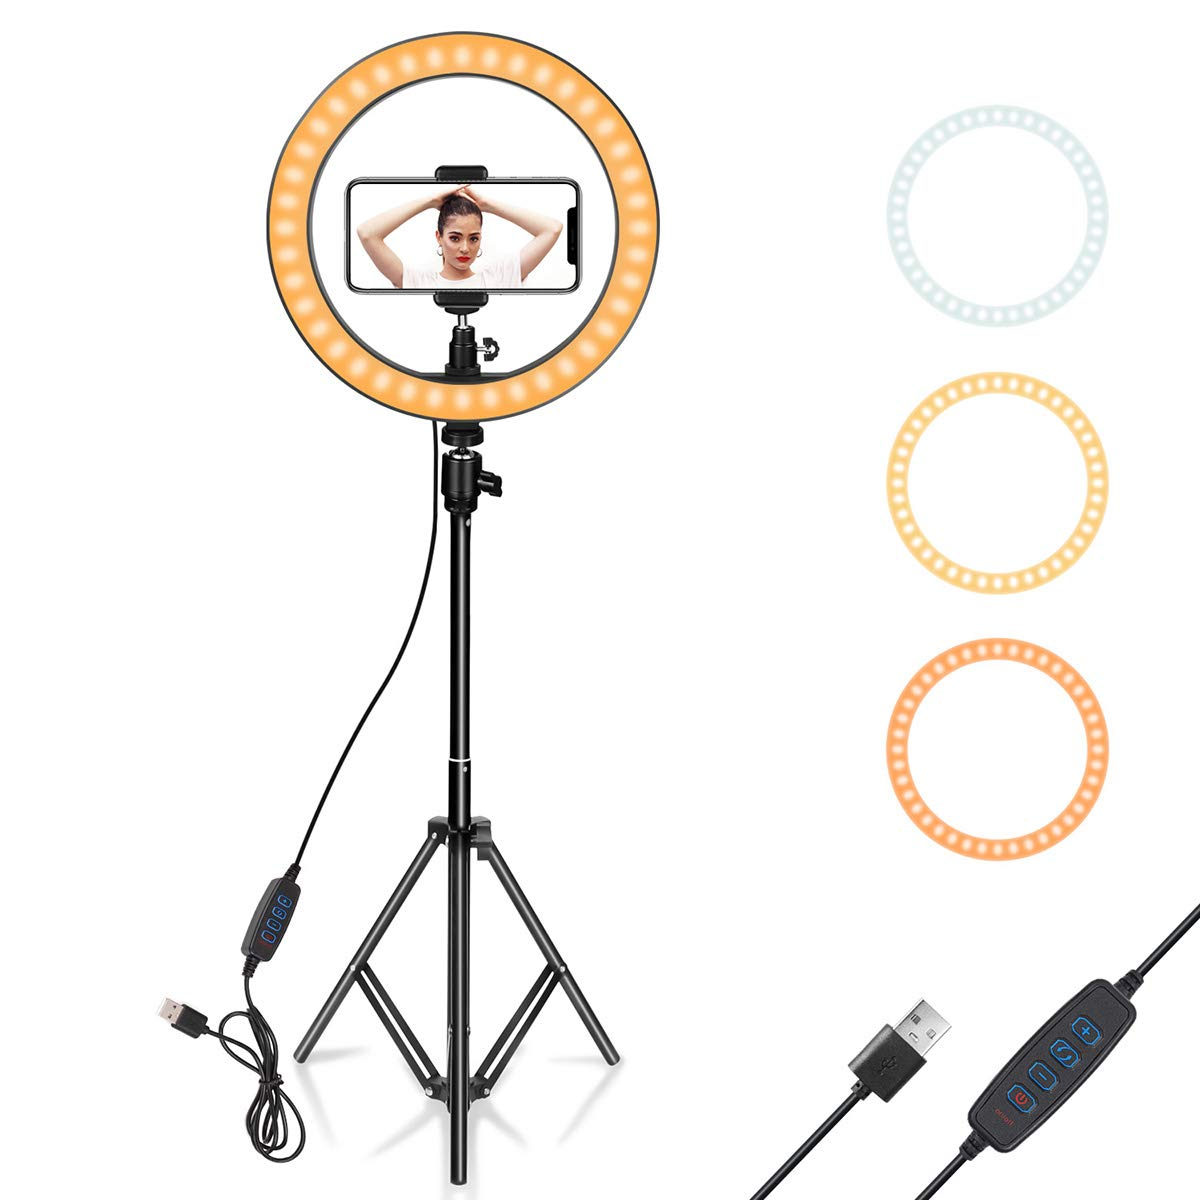 """Ring Light 10"""" with Tripod Stand & Phone Holder for YouTube Video, Desktop Camera Led Ring Light for Streaming, Makeup, Selfie Photography Compatible with iPhone Android"""